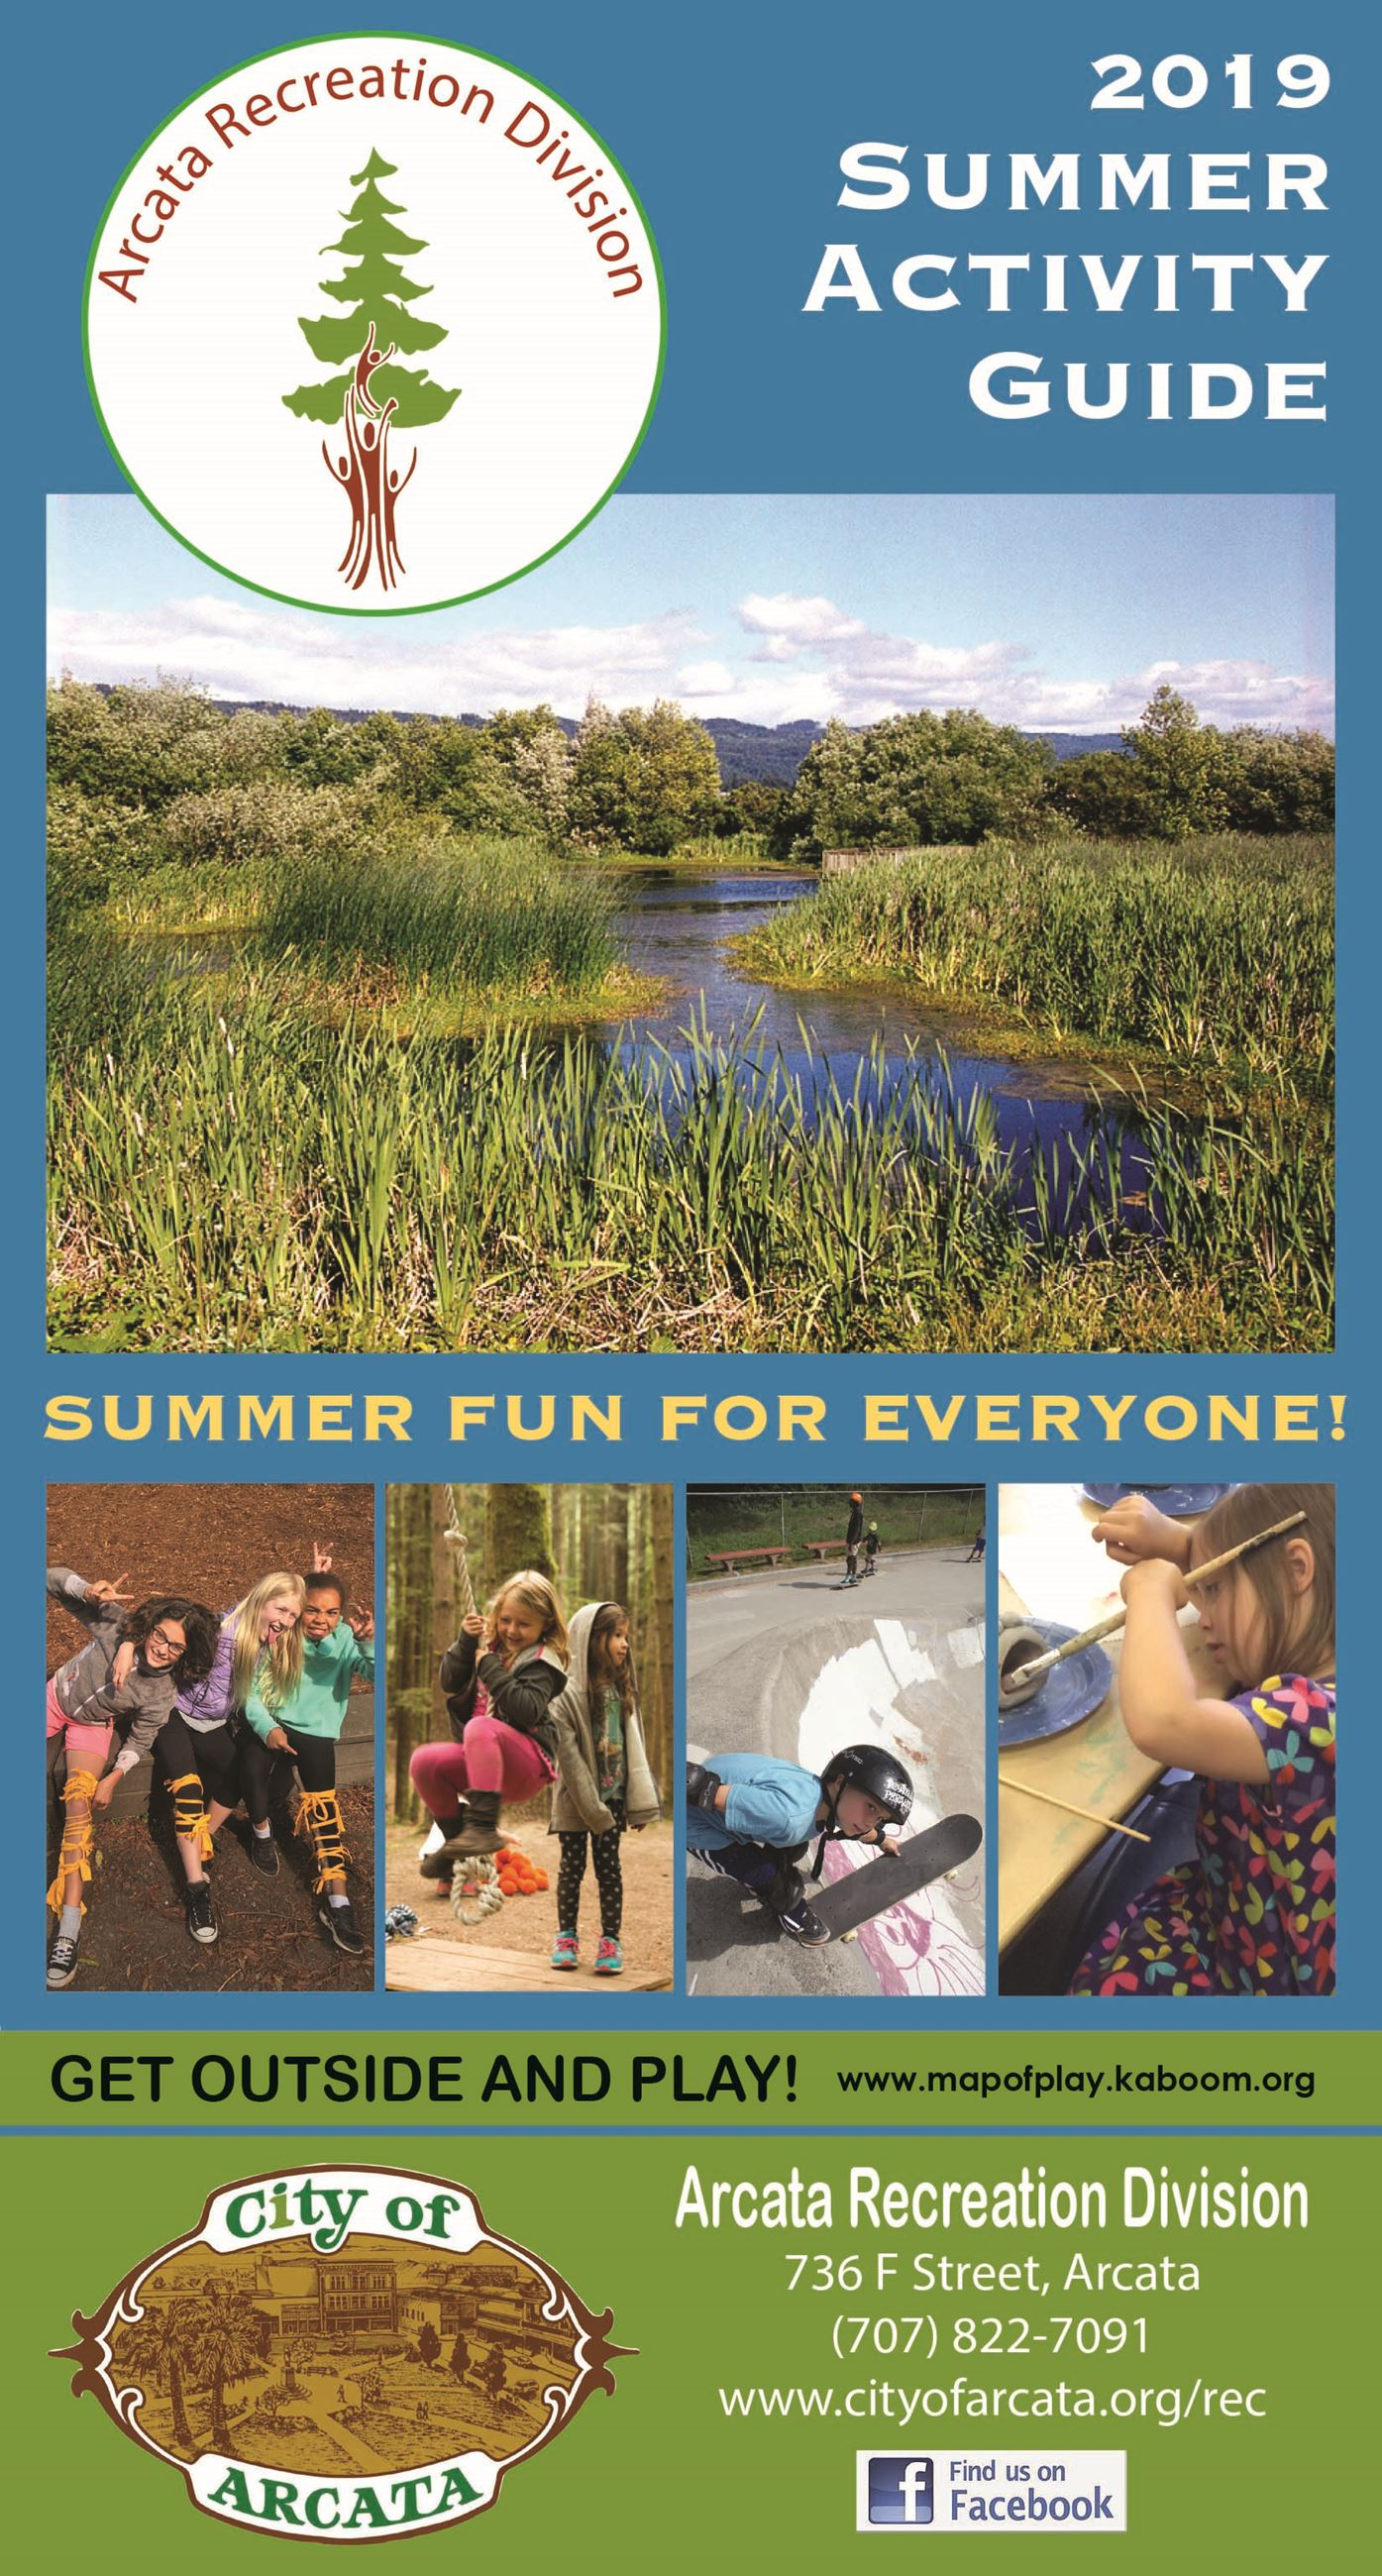 Recreation Division Summer Activity Guide 2019